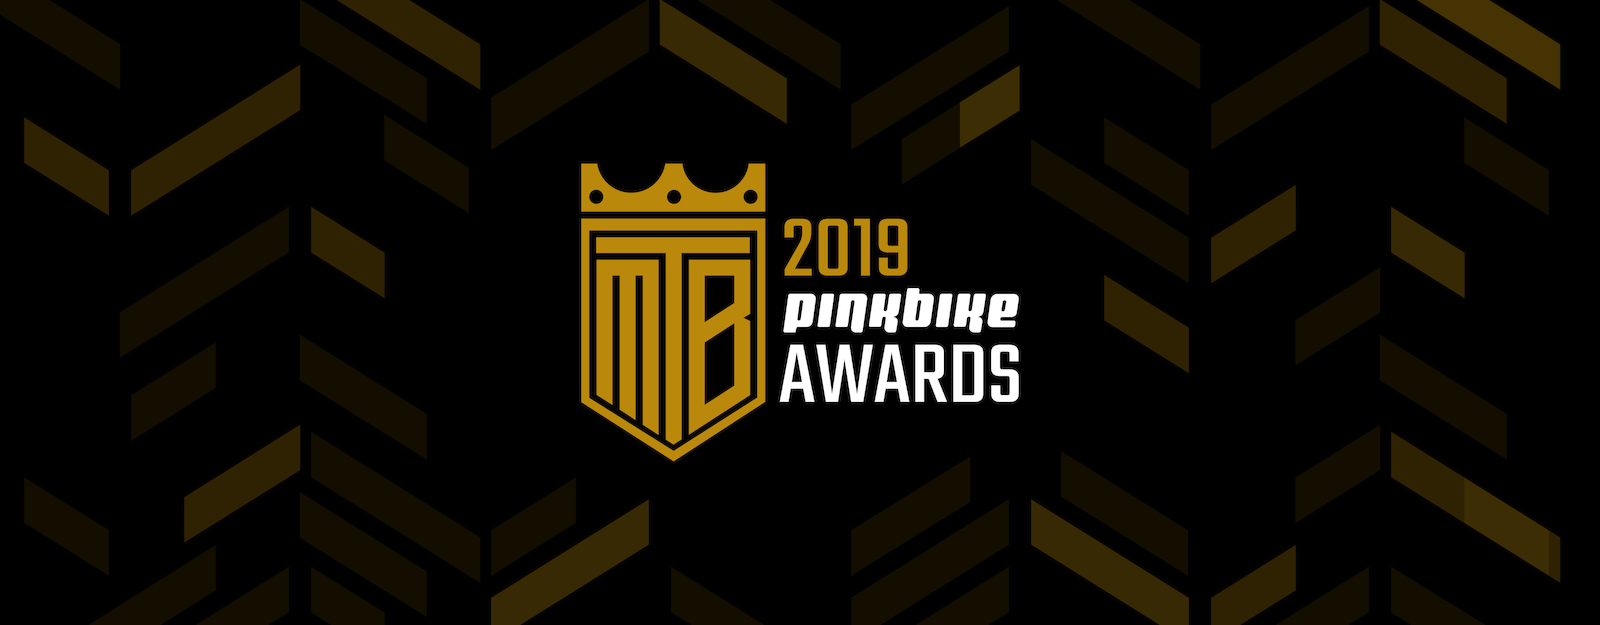 2019 Pinkbike Awards